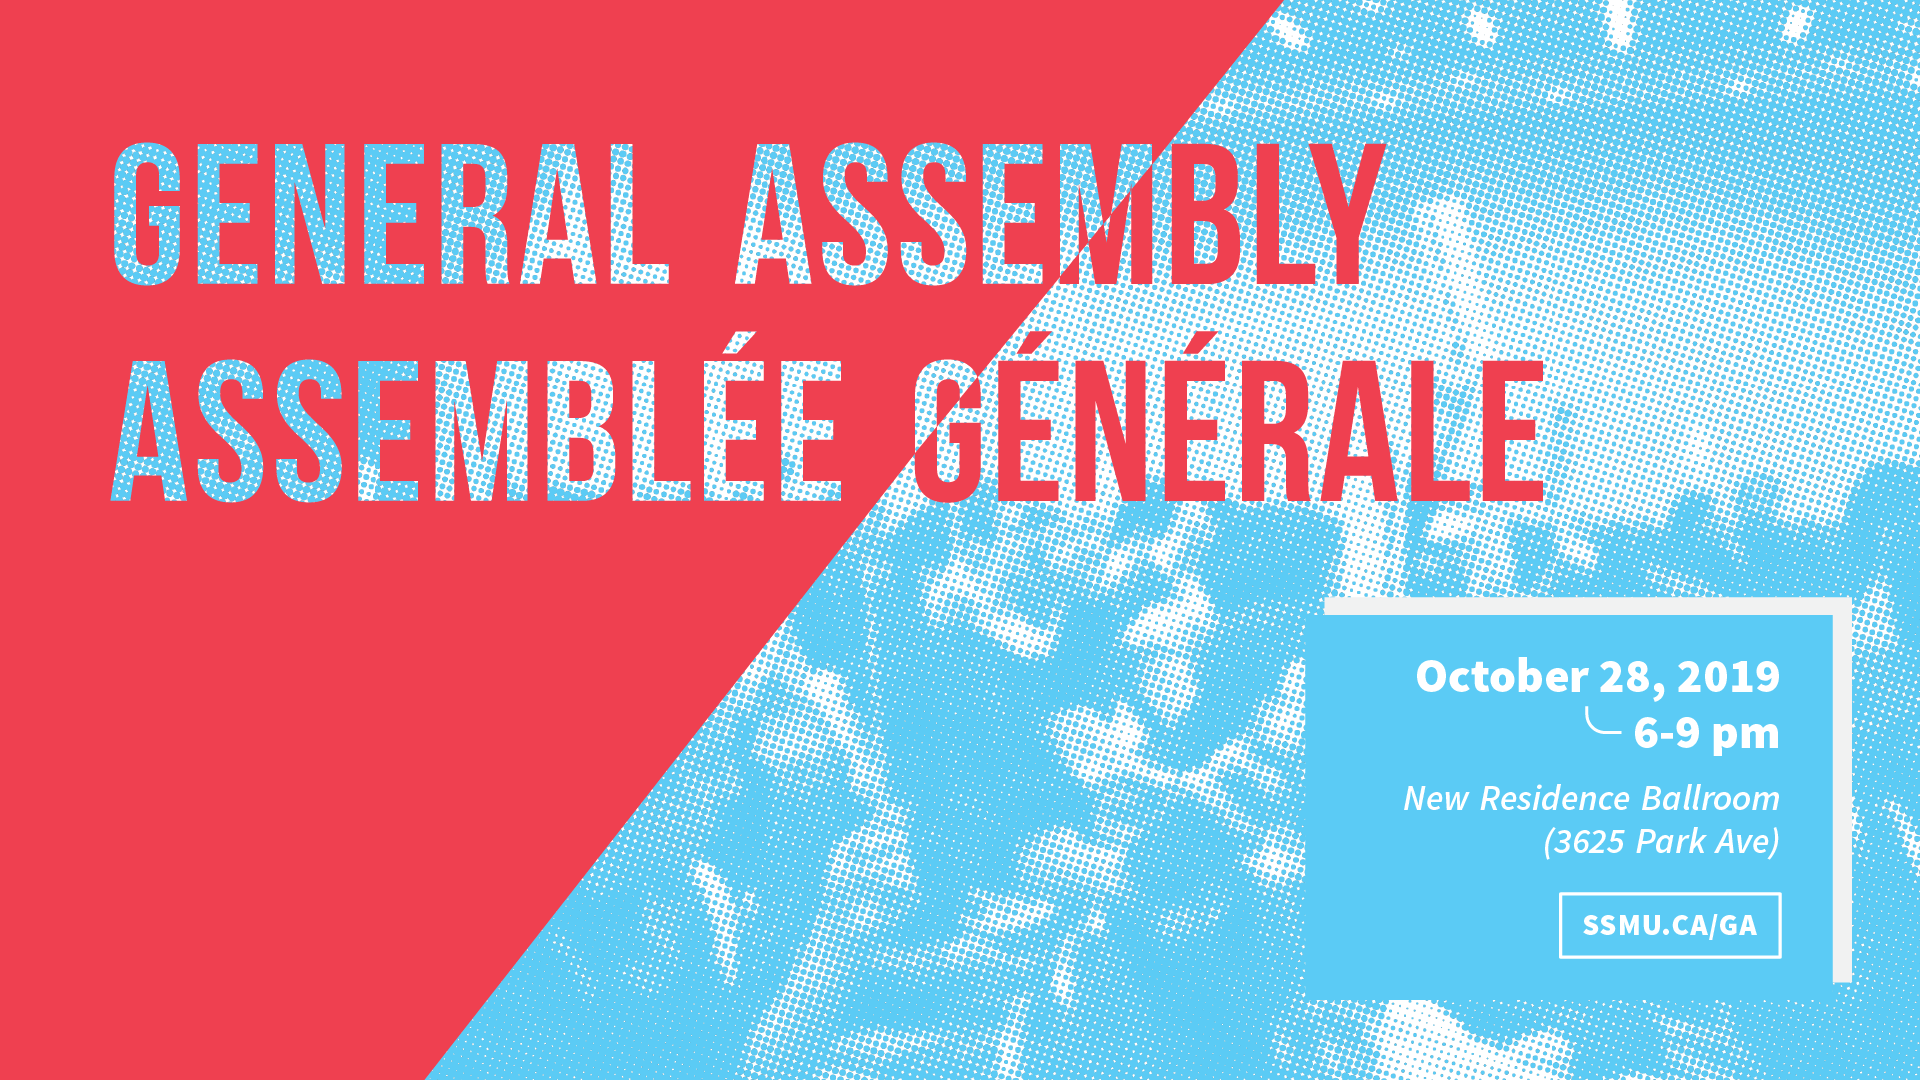 SSMU's Fall General Assembly